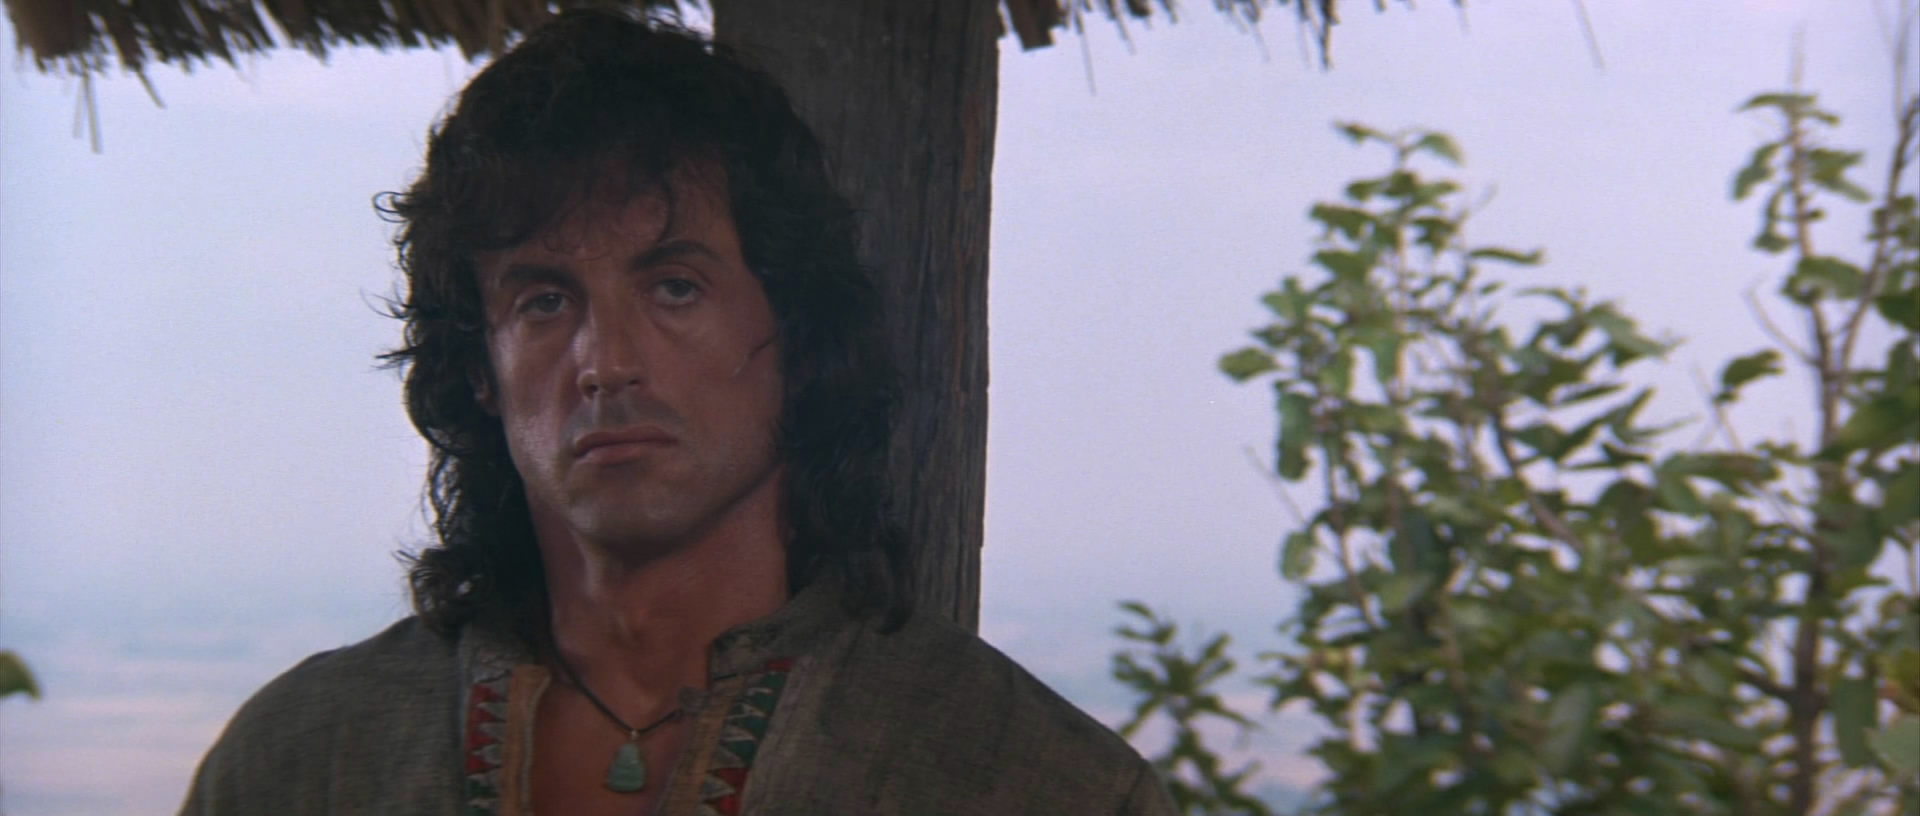 Rambo 1 3 1982 1988 German DTS 1080p HDDVD x264 SightHD mnvv2 ws preview 2